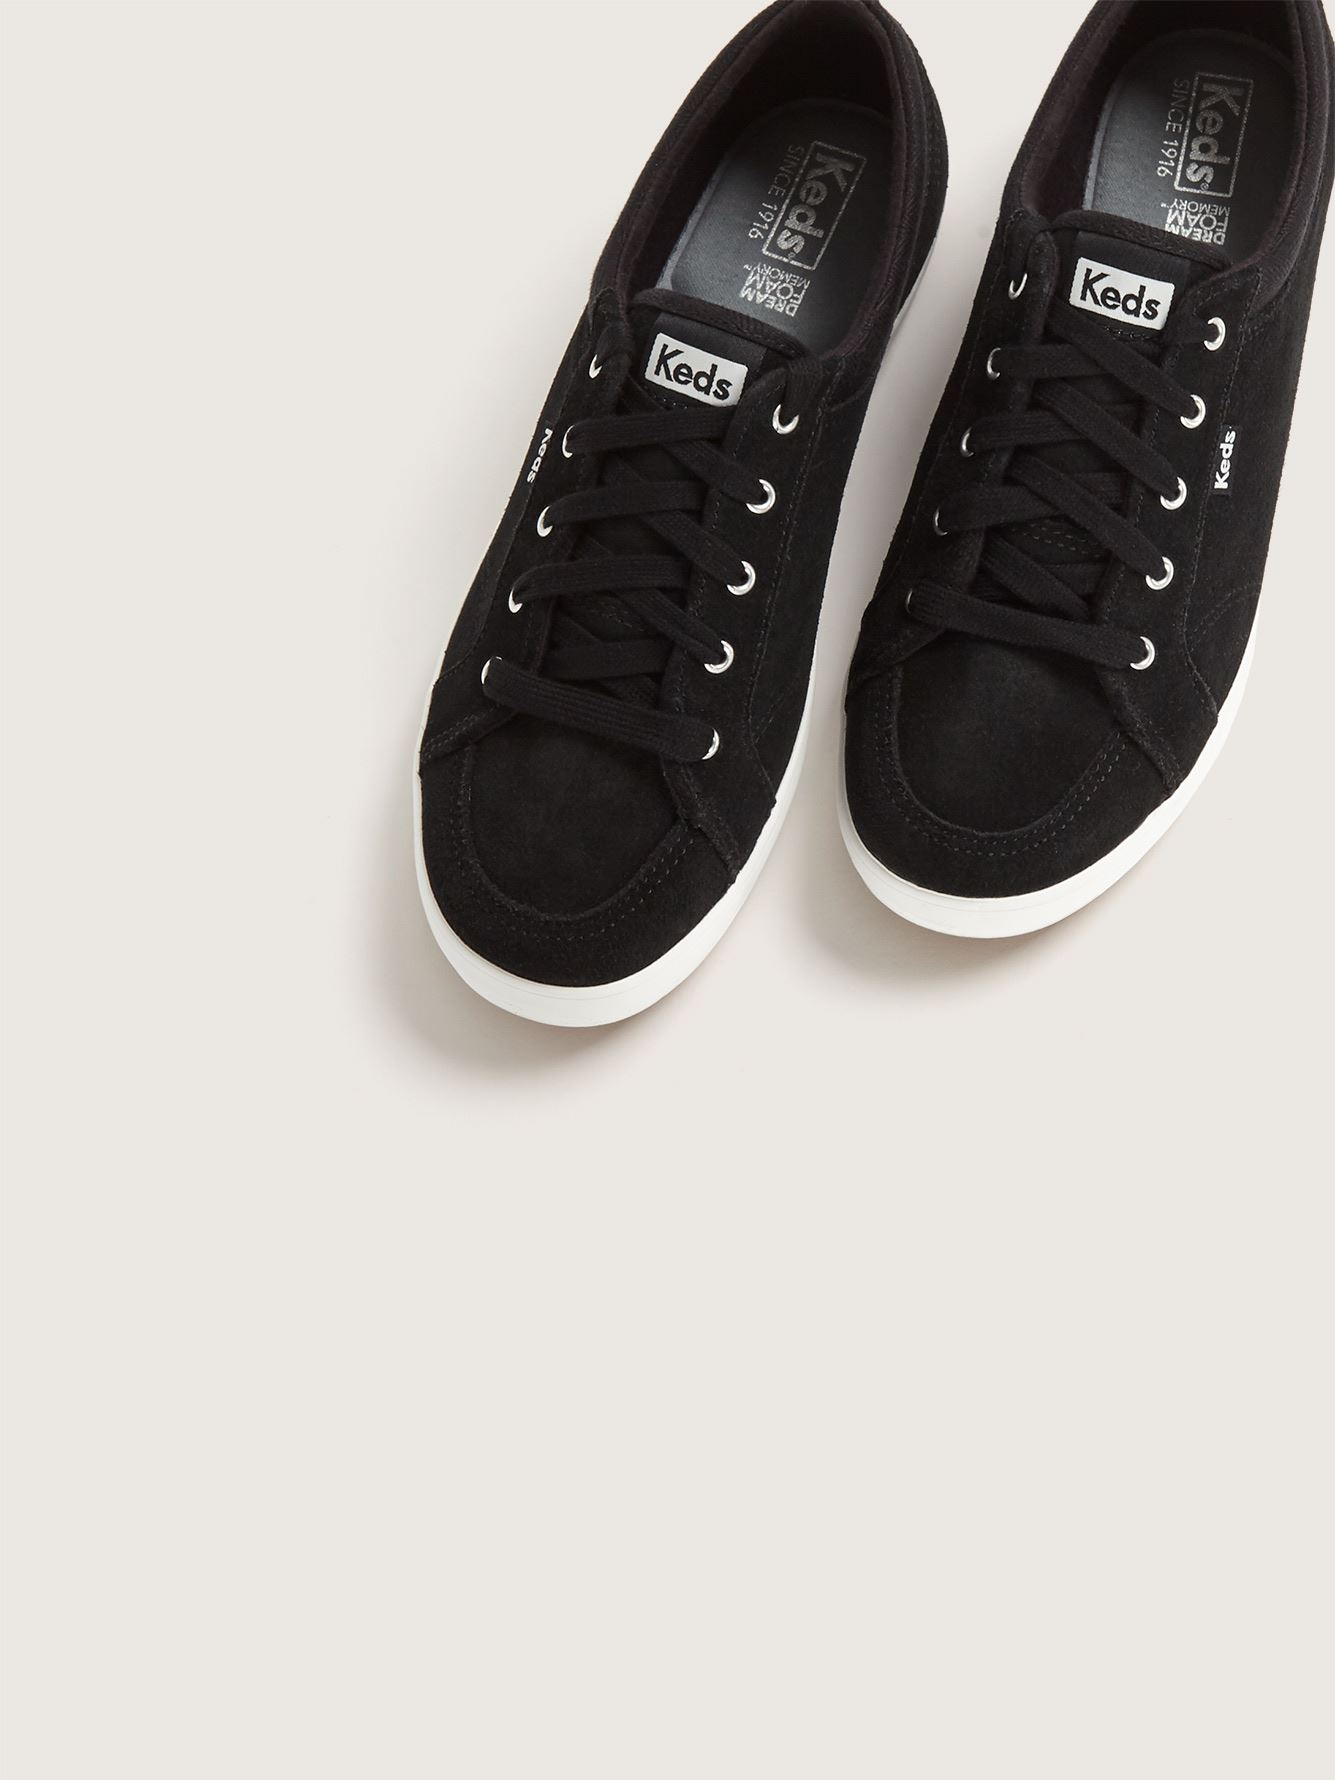 Wide Slip-On Suede Center Sneakers - Keds